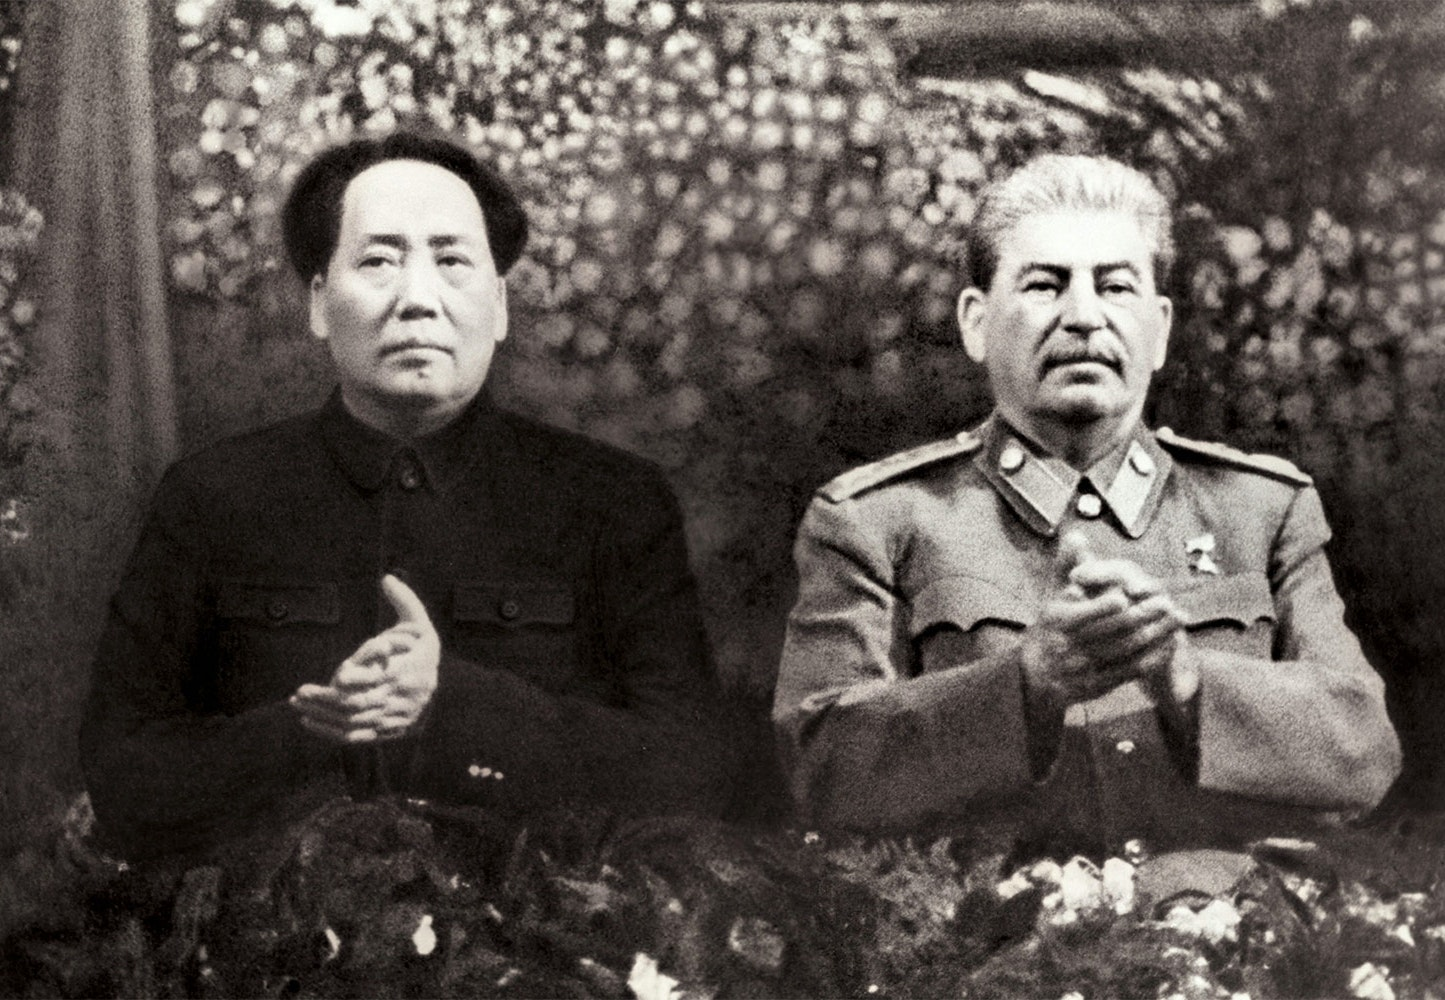 mao and stalin relationship with hitler